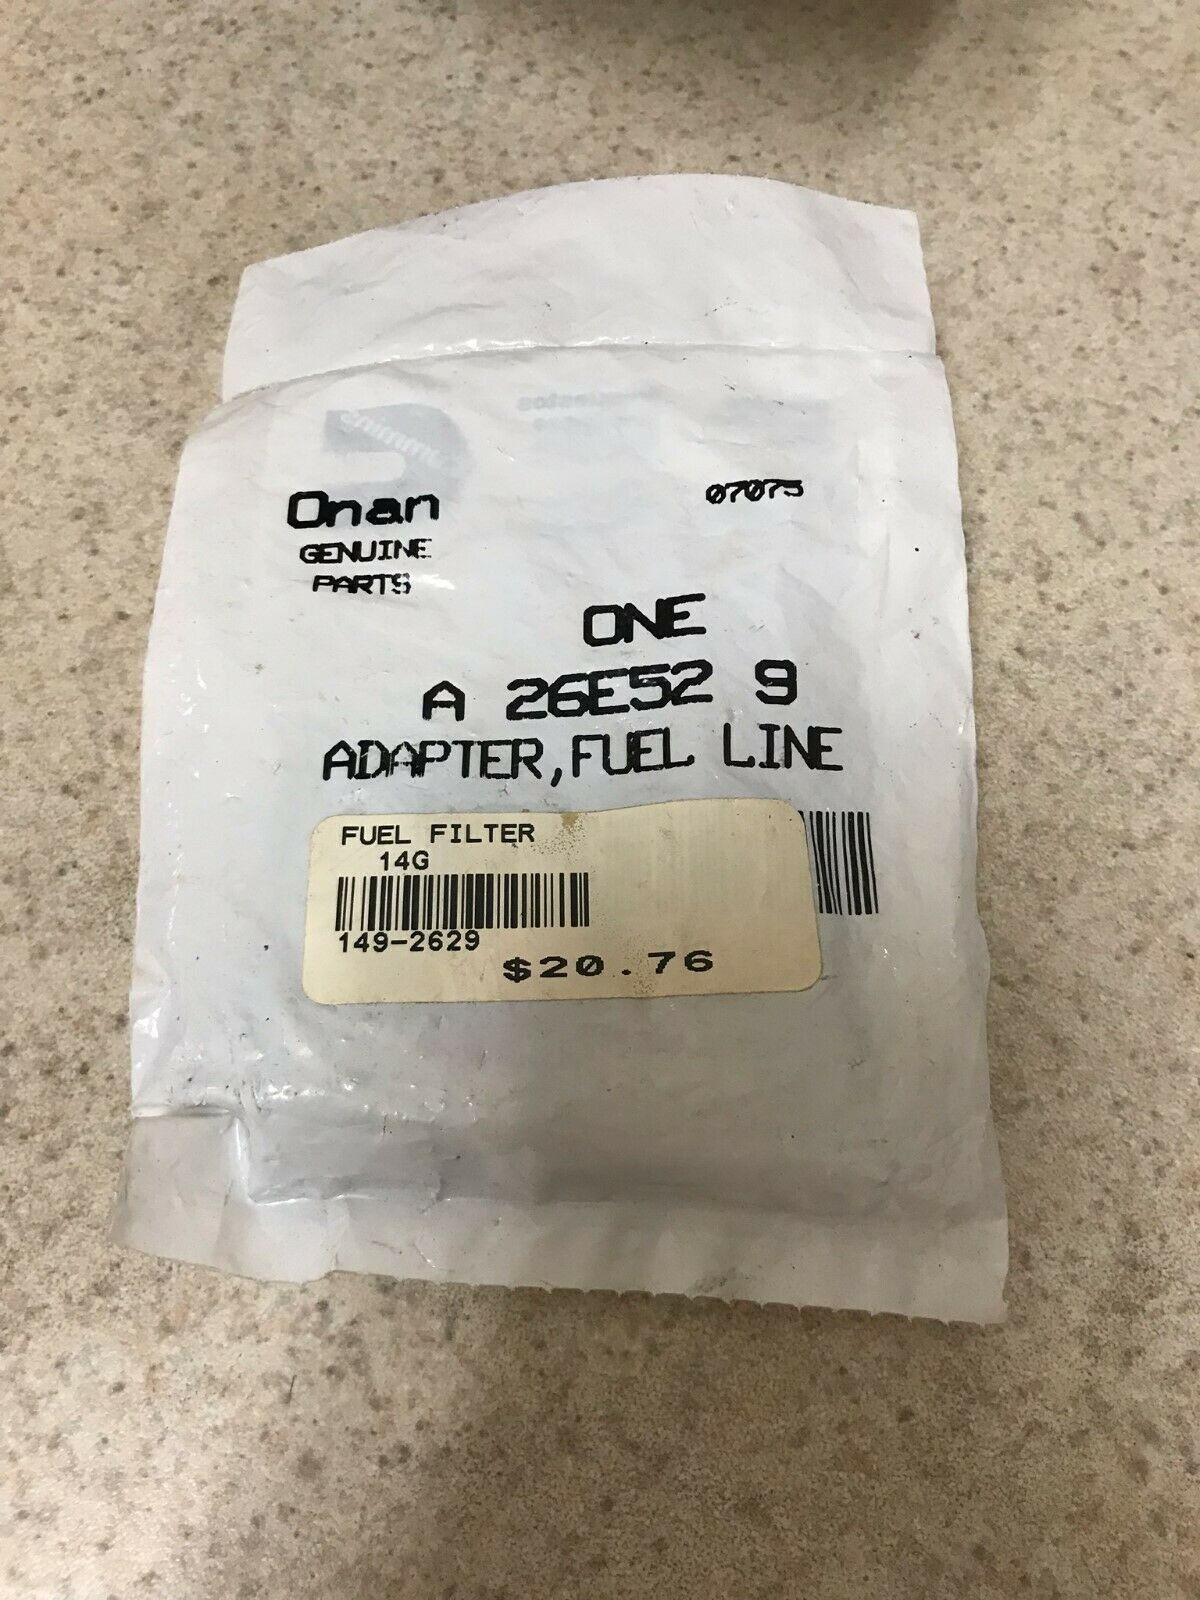 Genuine Onan fuel filter #149-2629 / A26E529 New Old Stock